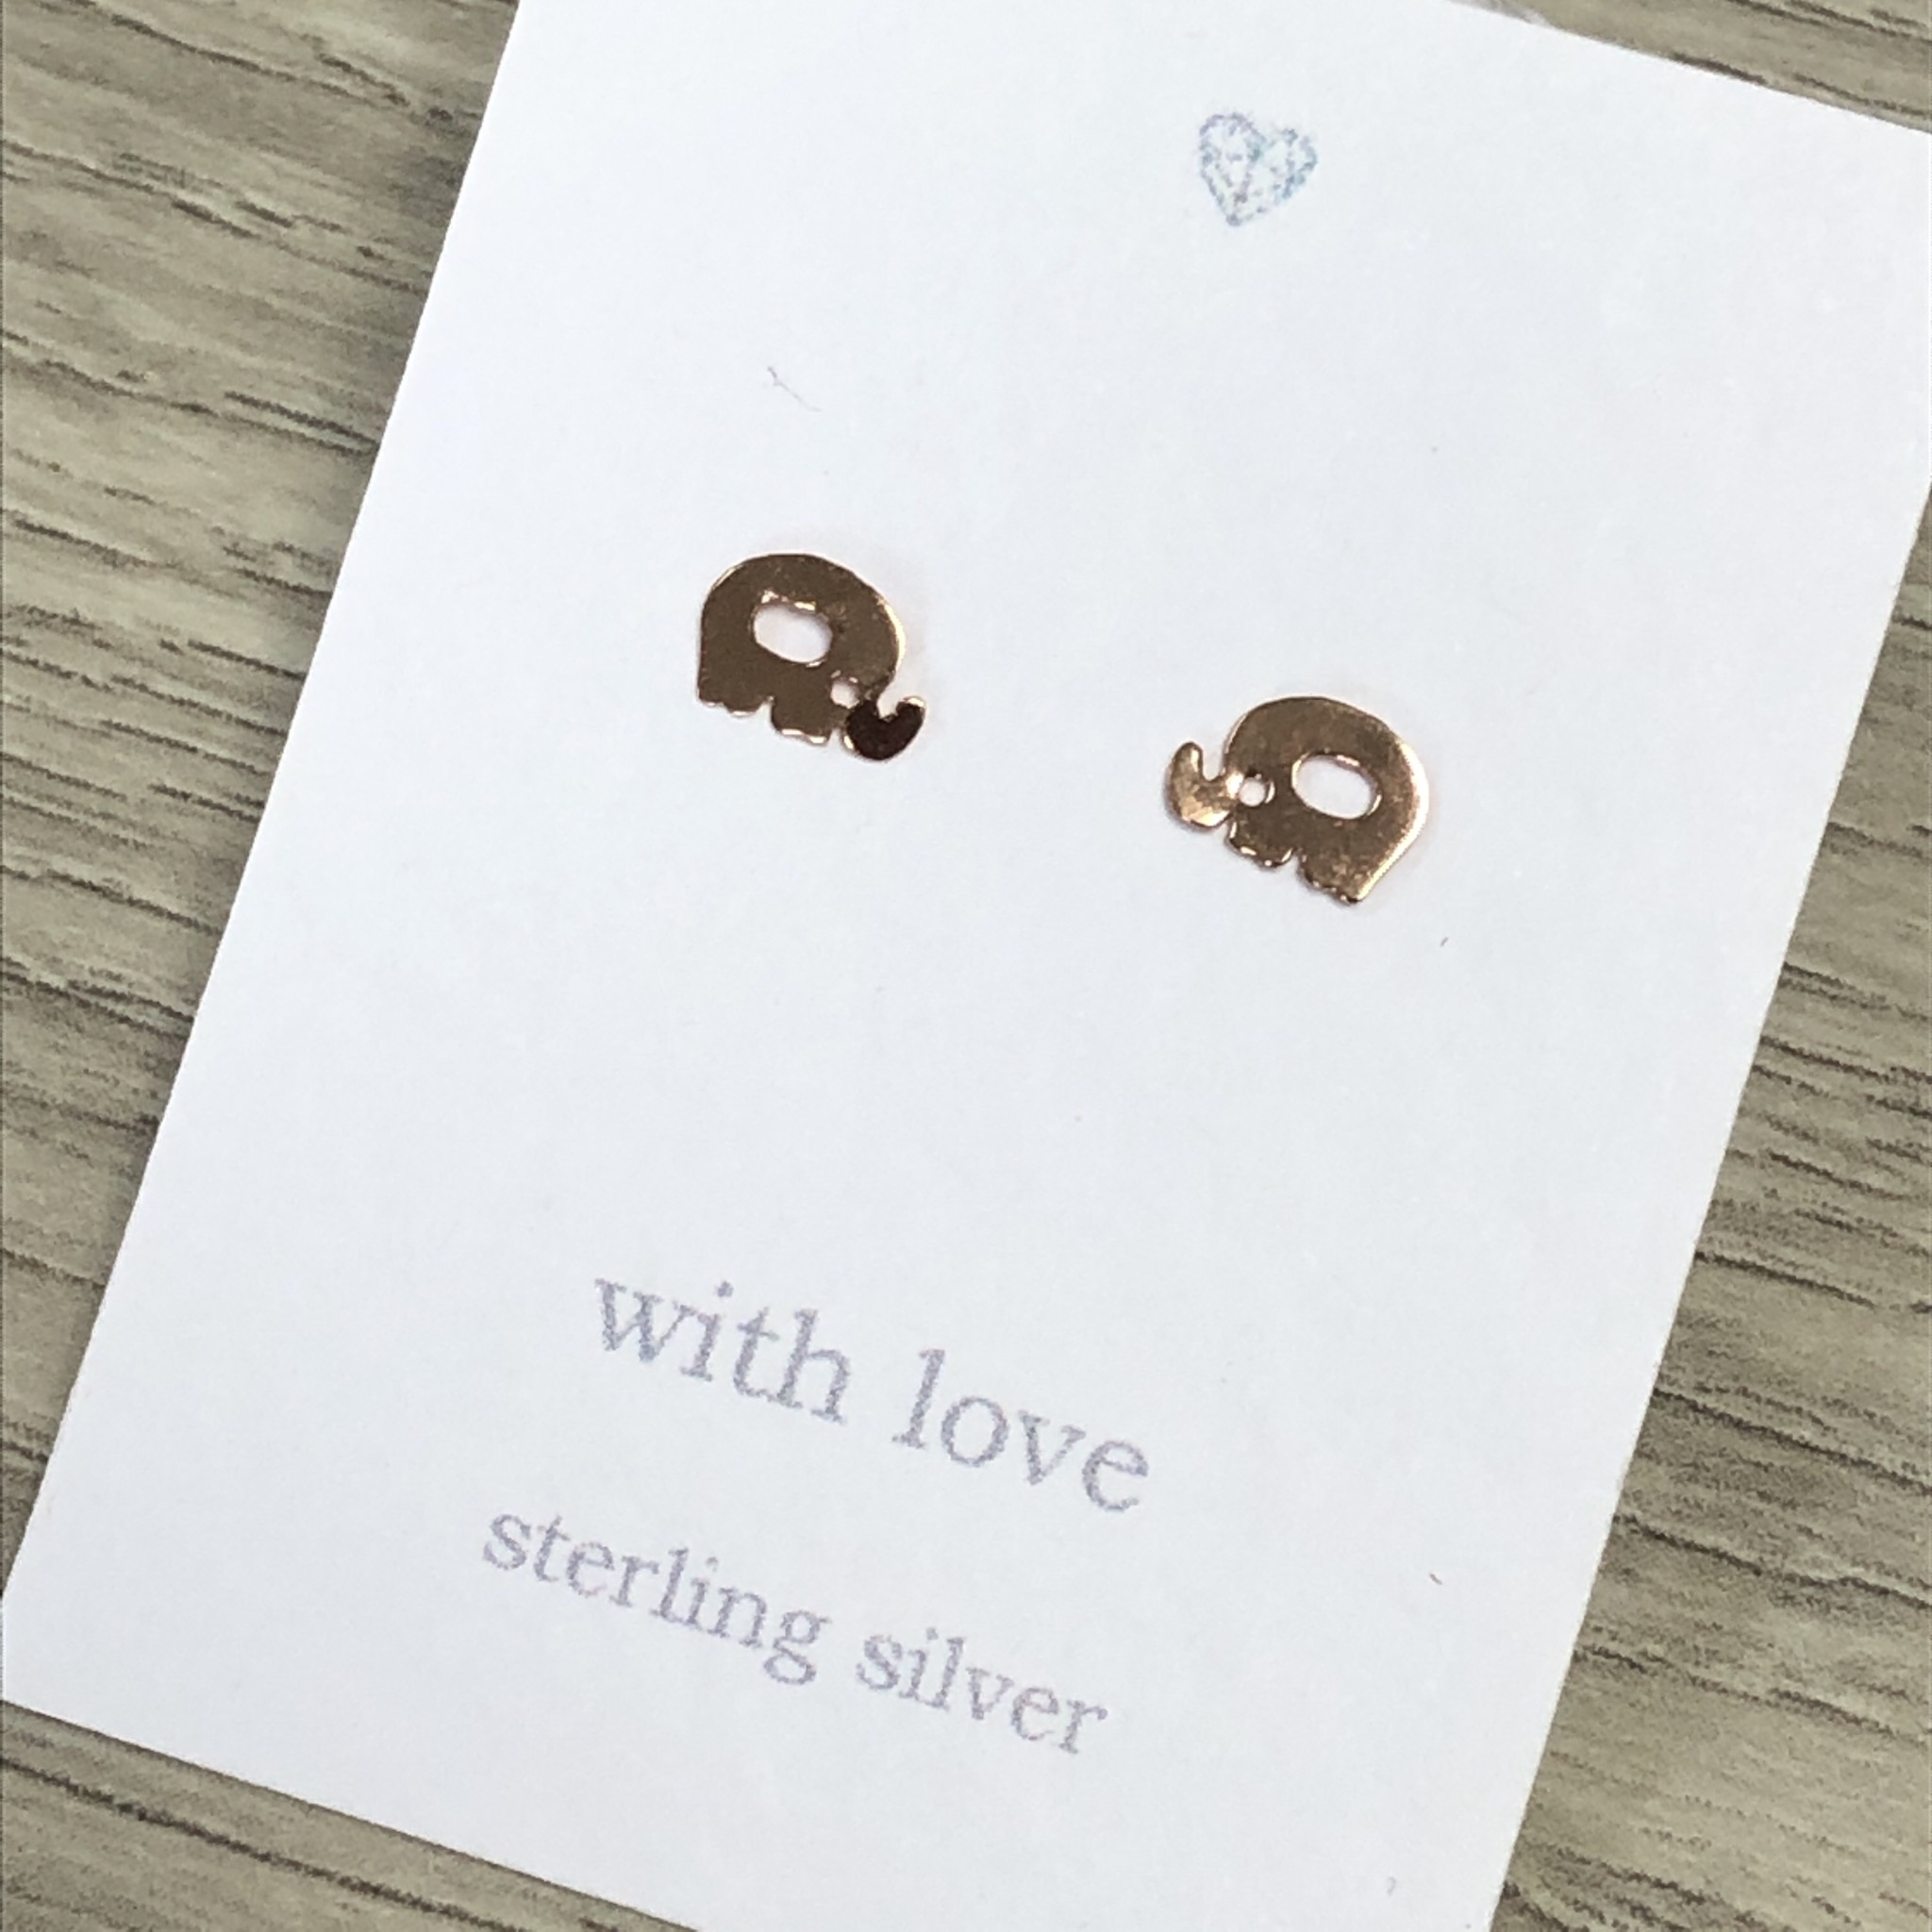 Elephant stud earrings rose gold plated